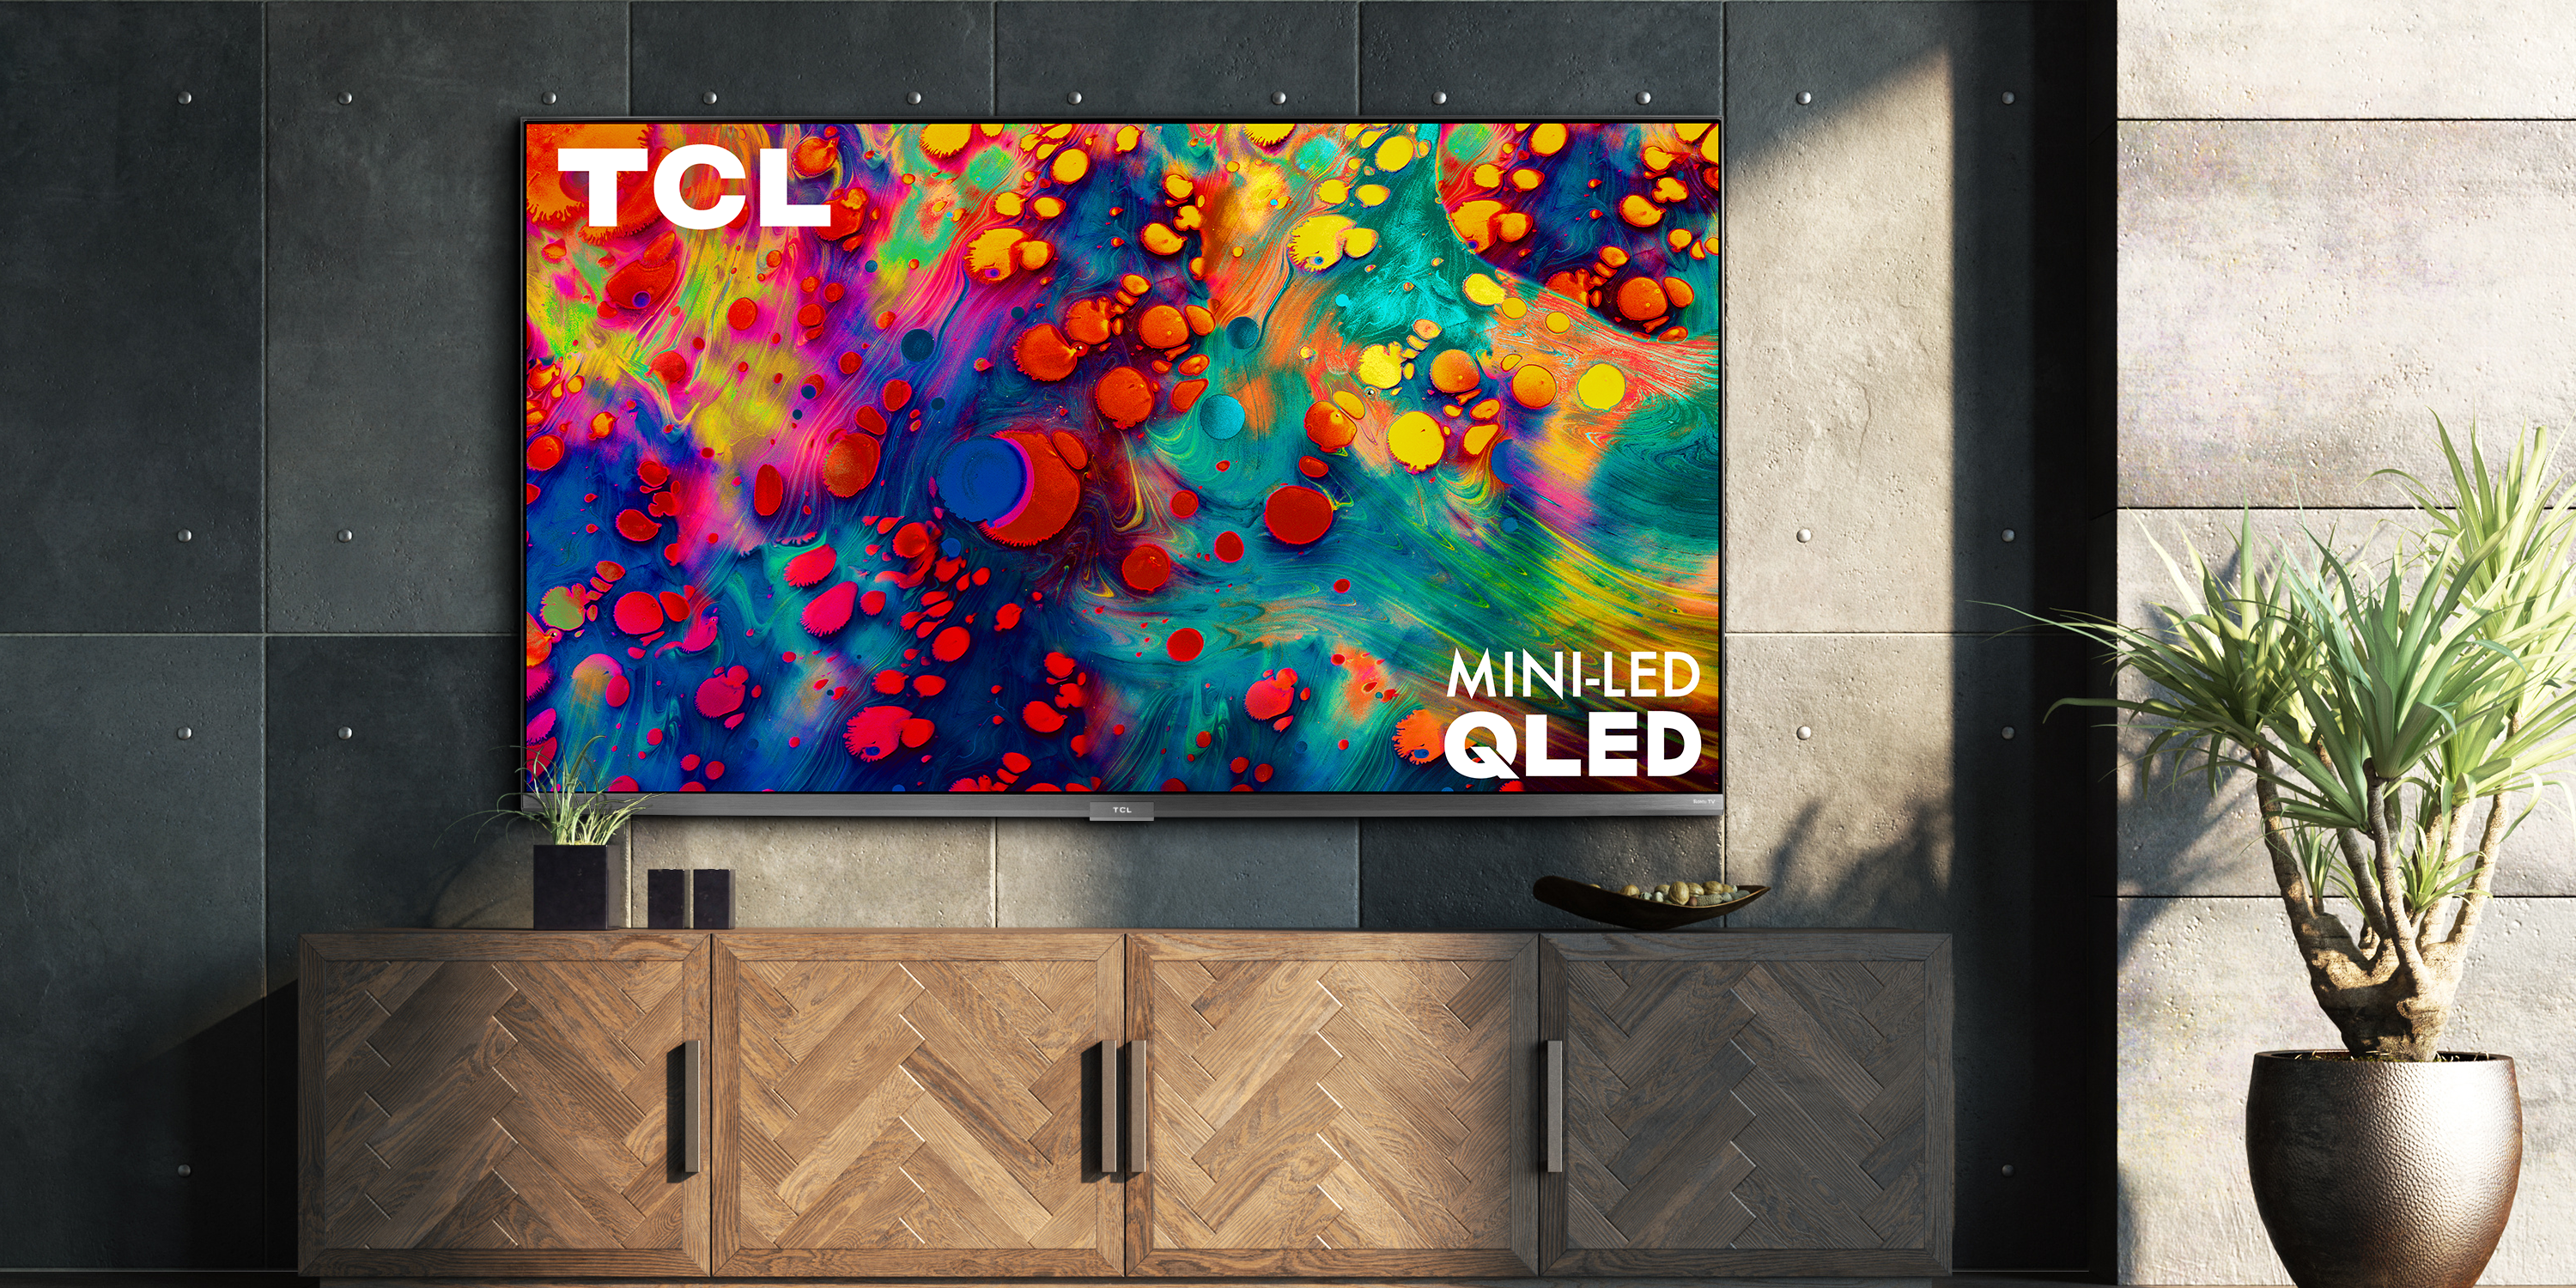 TCL's new 6-Series QLED Roku TVs come with mini-LED backlights.